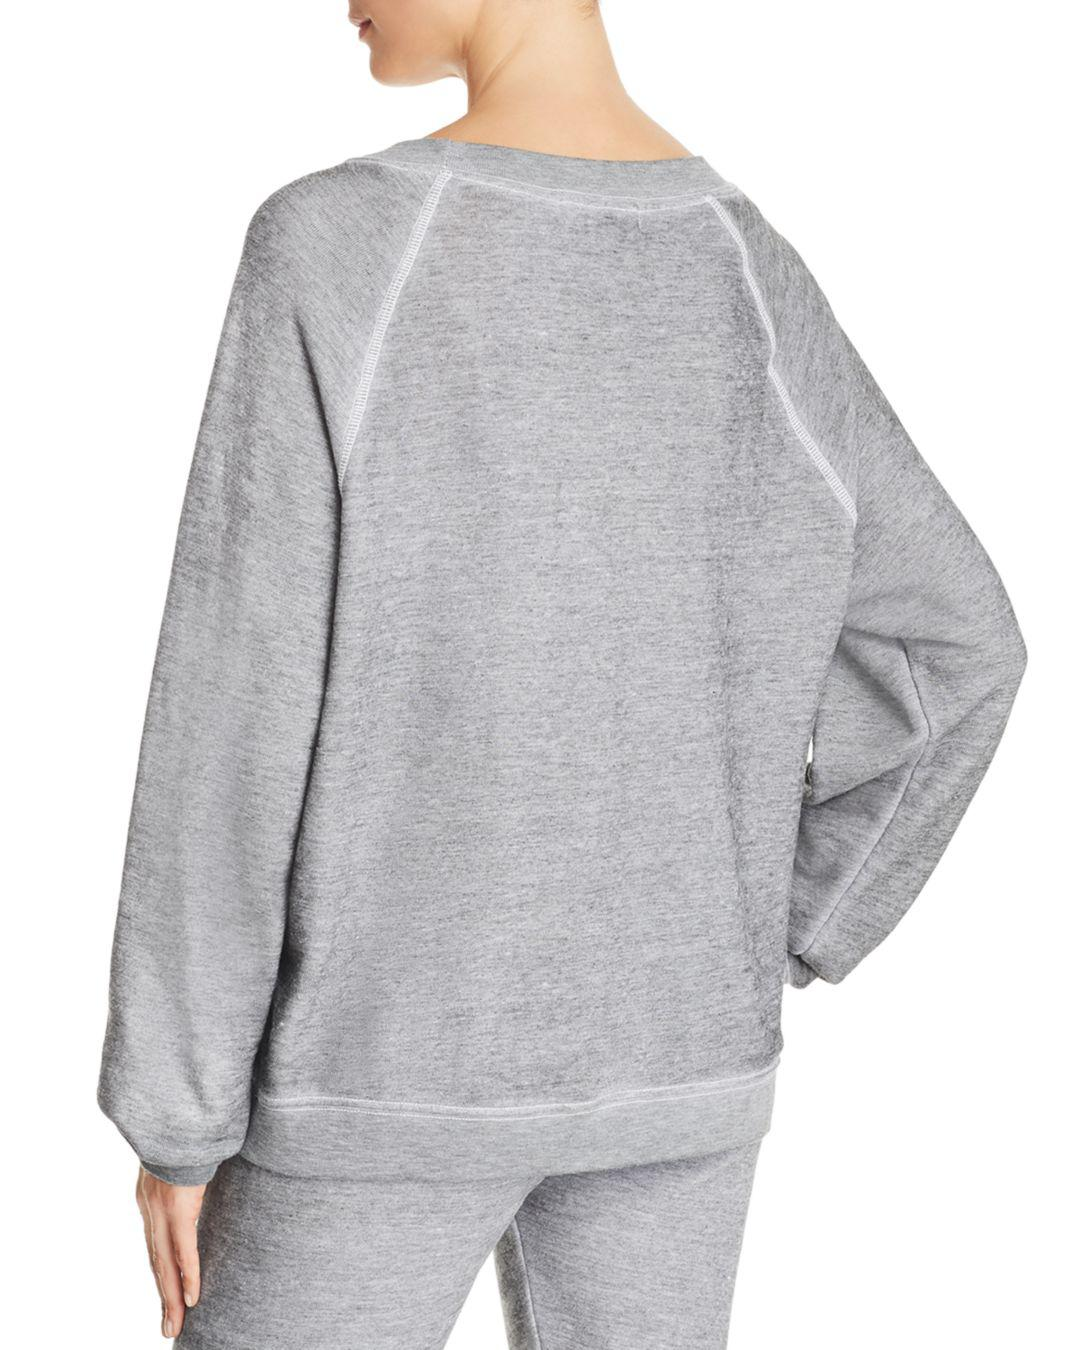 b8dc6b8b15bf1 Lyst - Wildfox Tartan Heart Sweatshirt in Gray